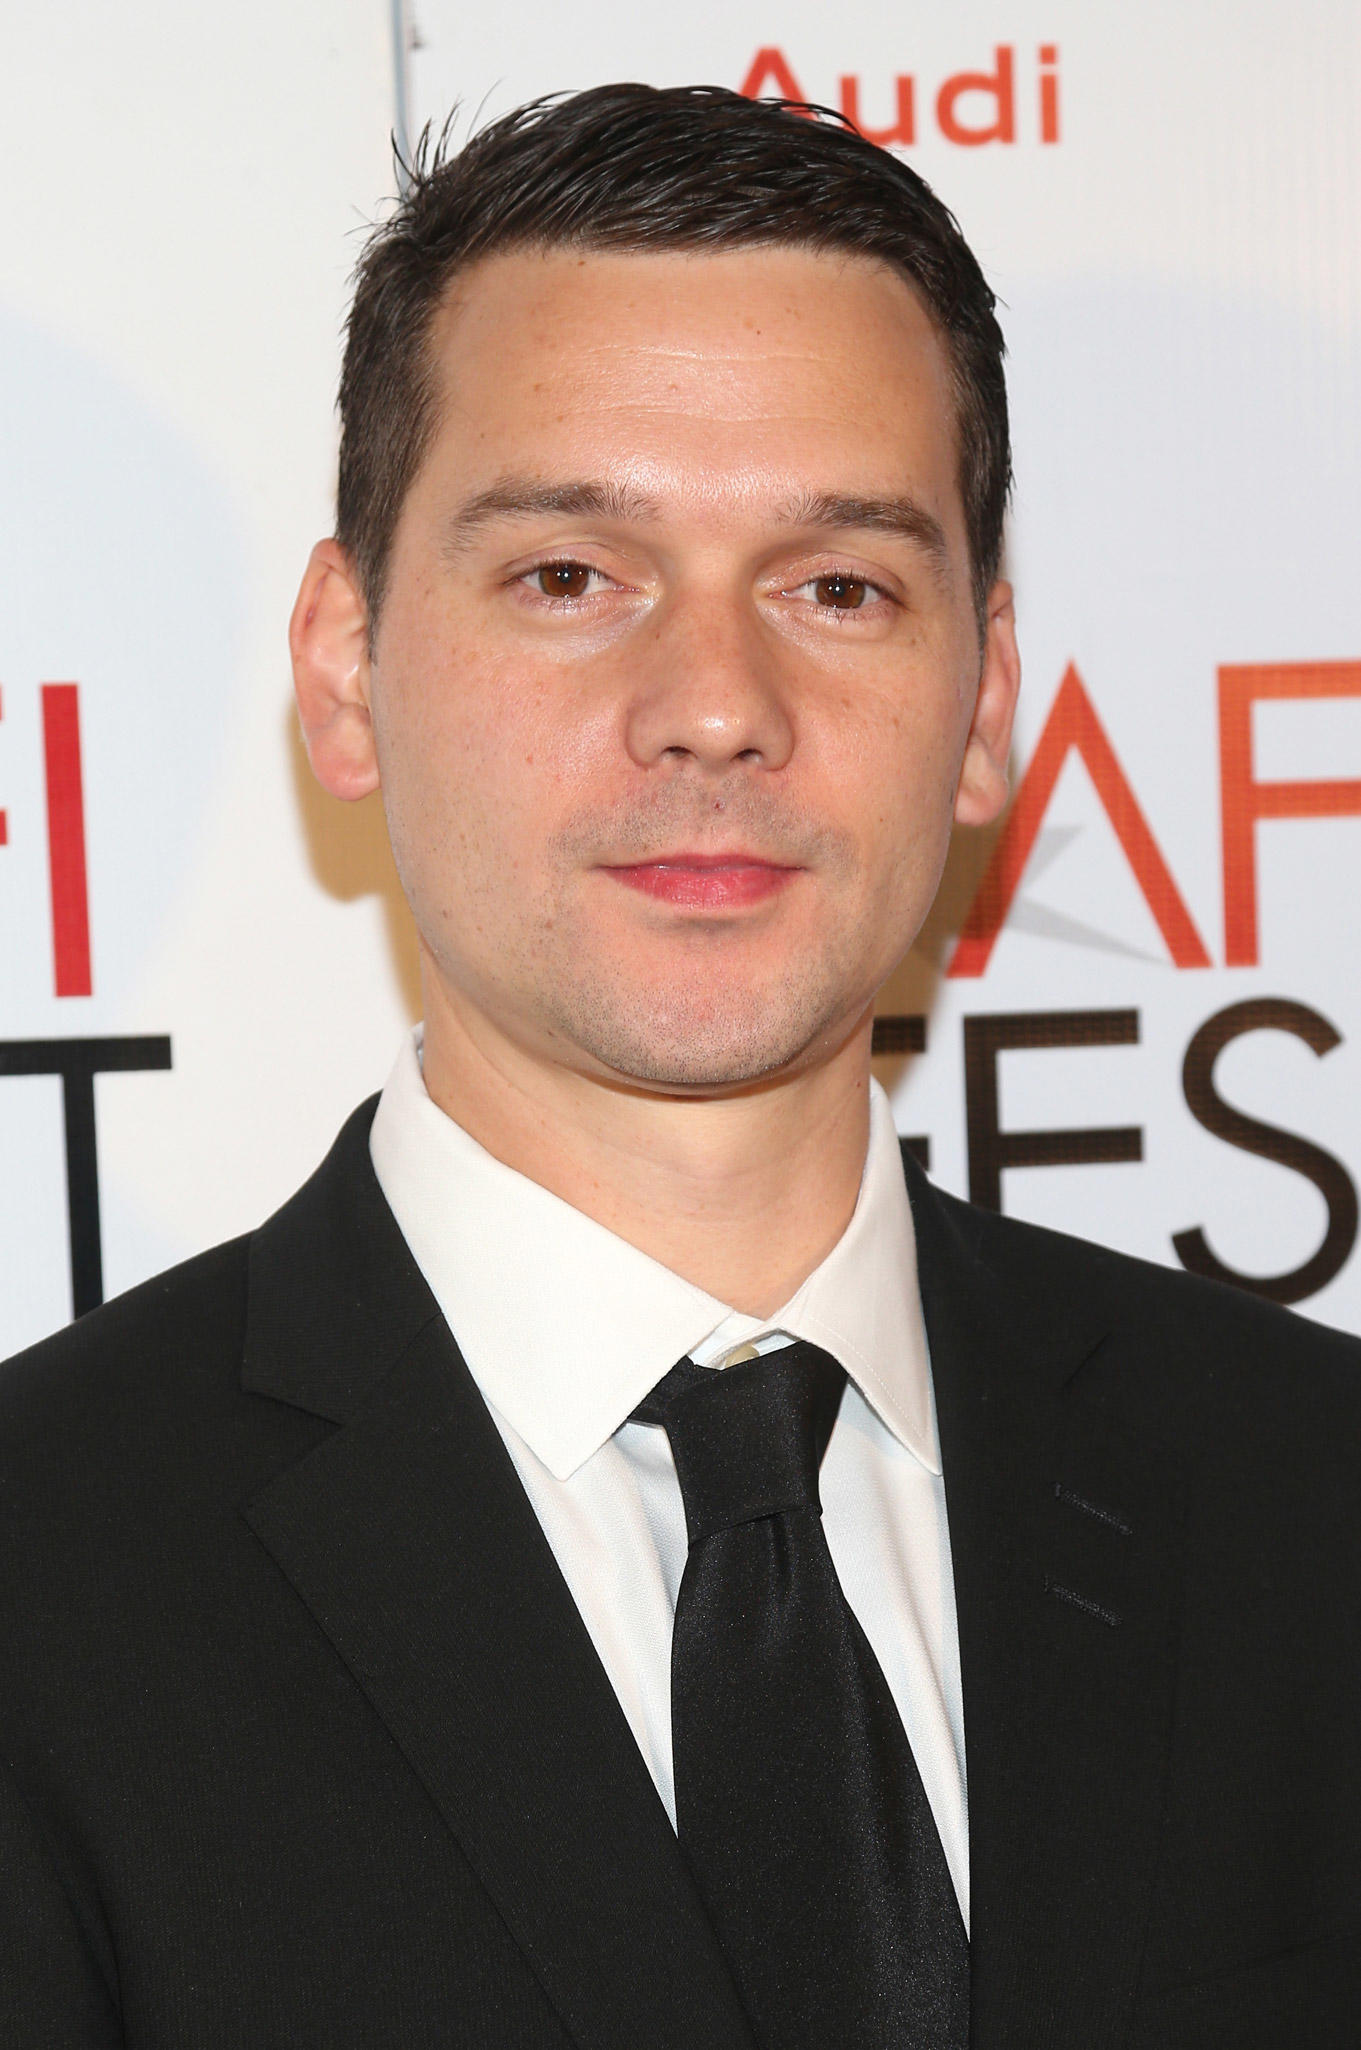 Jeremy Saulnier at the AFI FEST 2013 at the Chinese 6 Theater in Hollywood, CA.